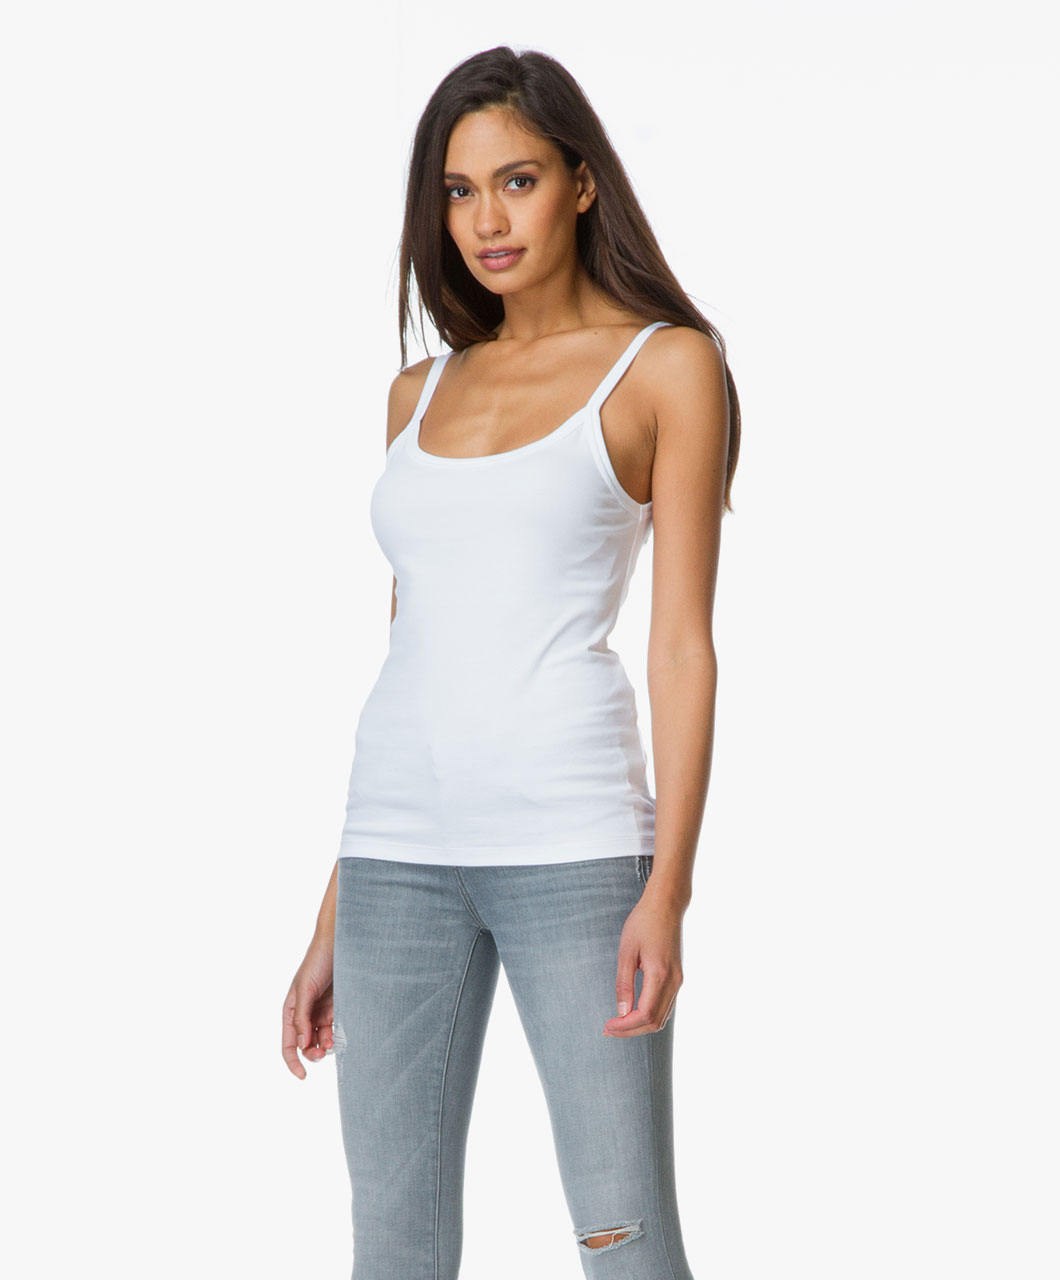 filippa k tank top